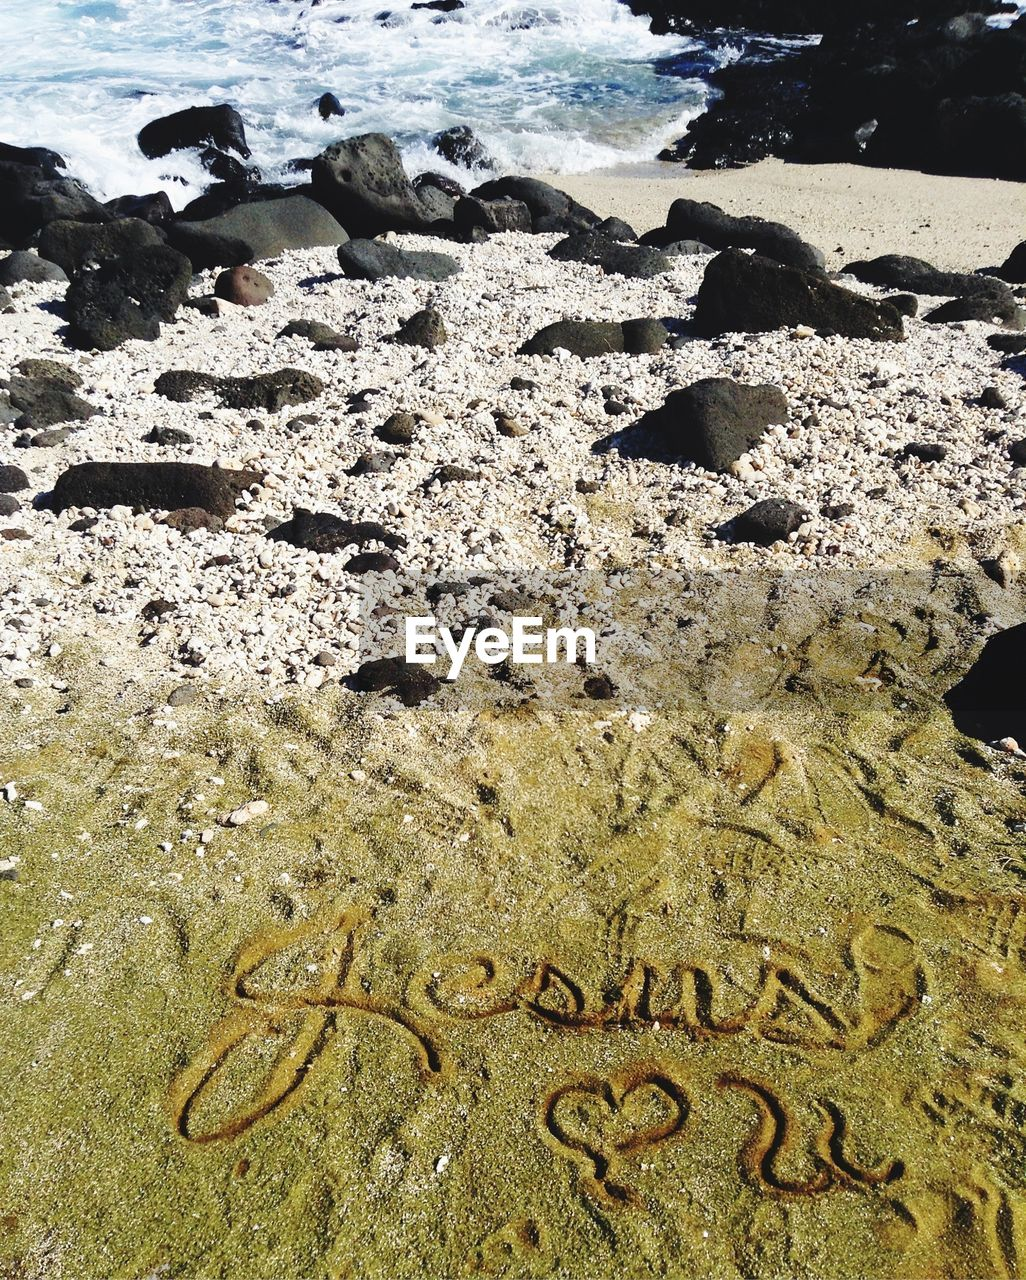 High angle view of text on sand at beach during sunny day